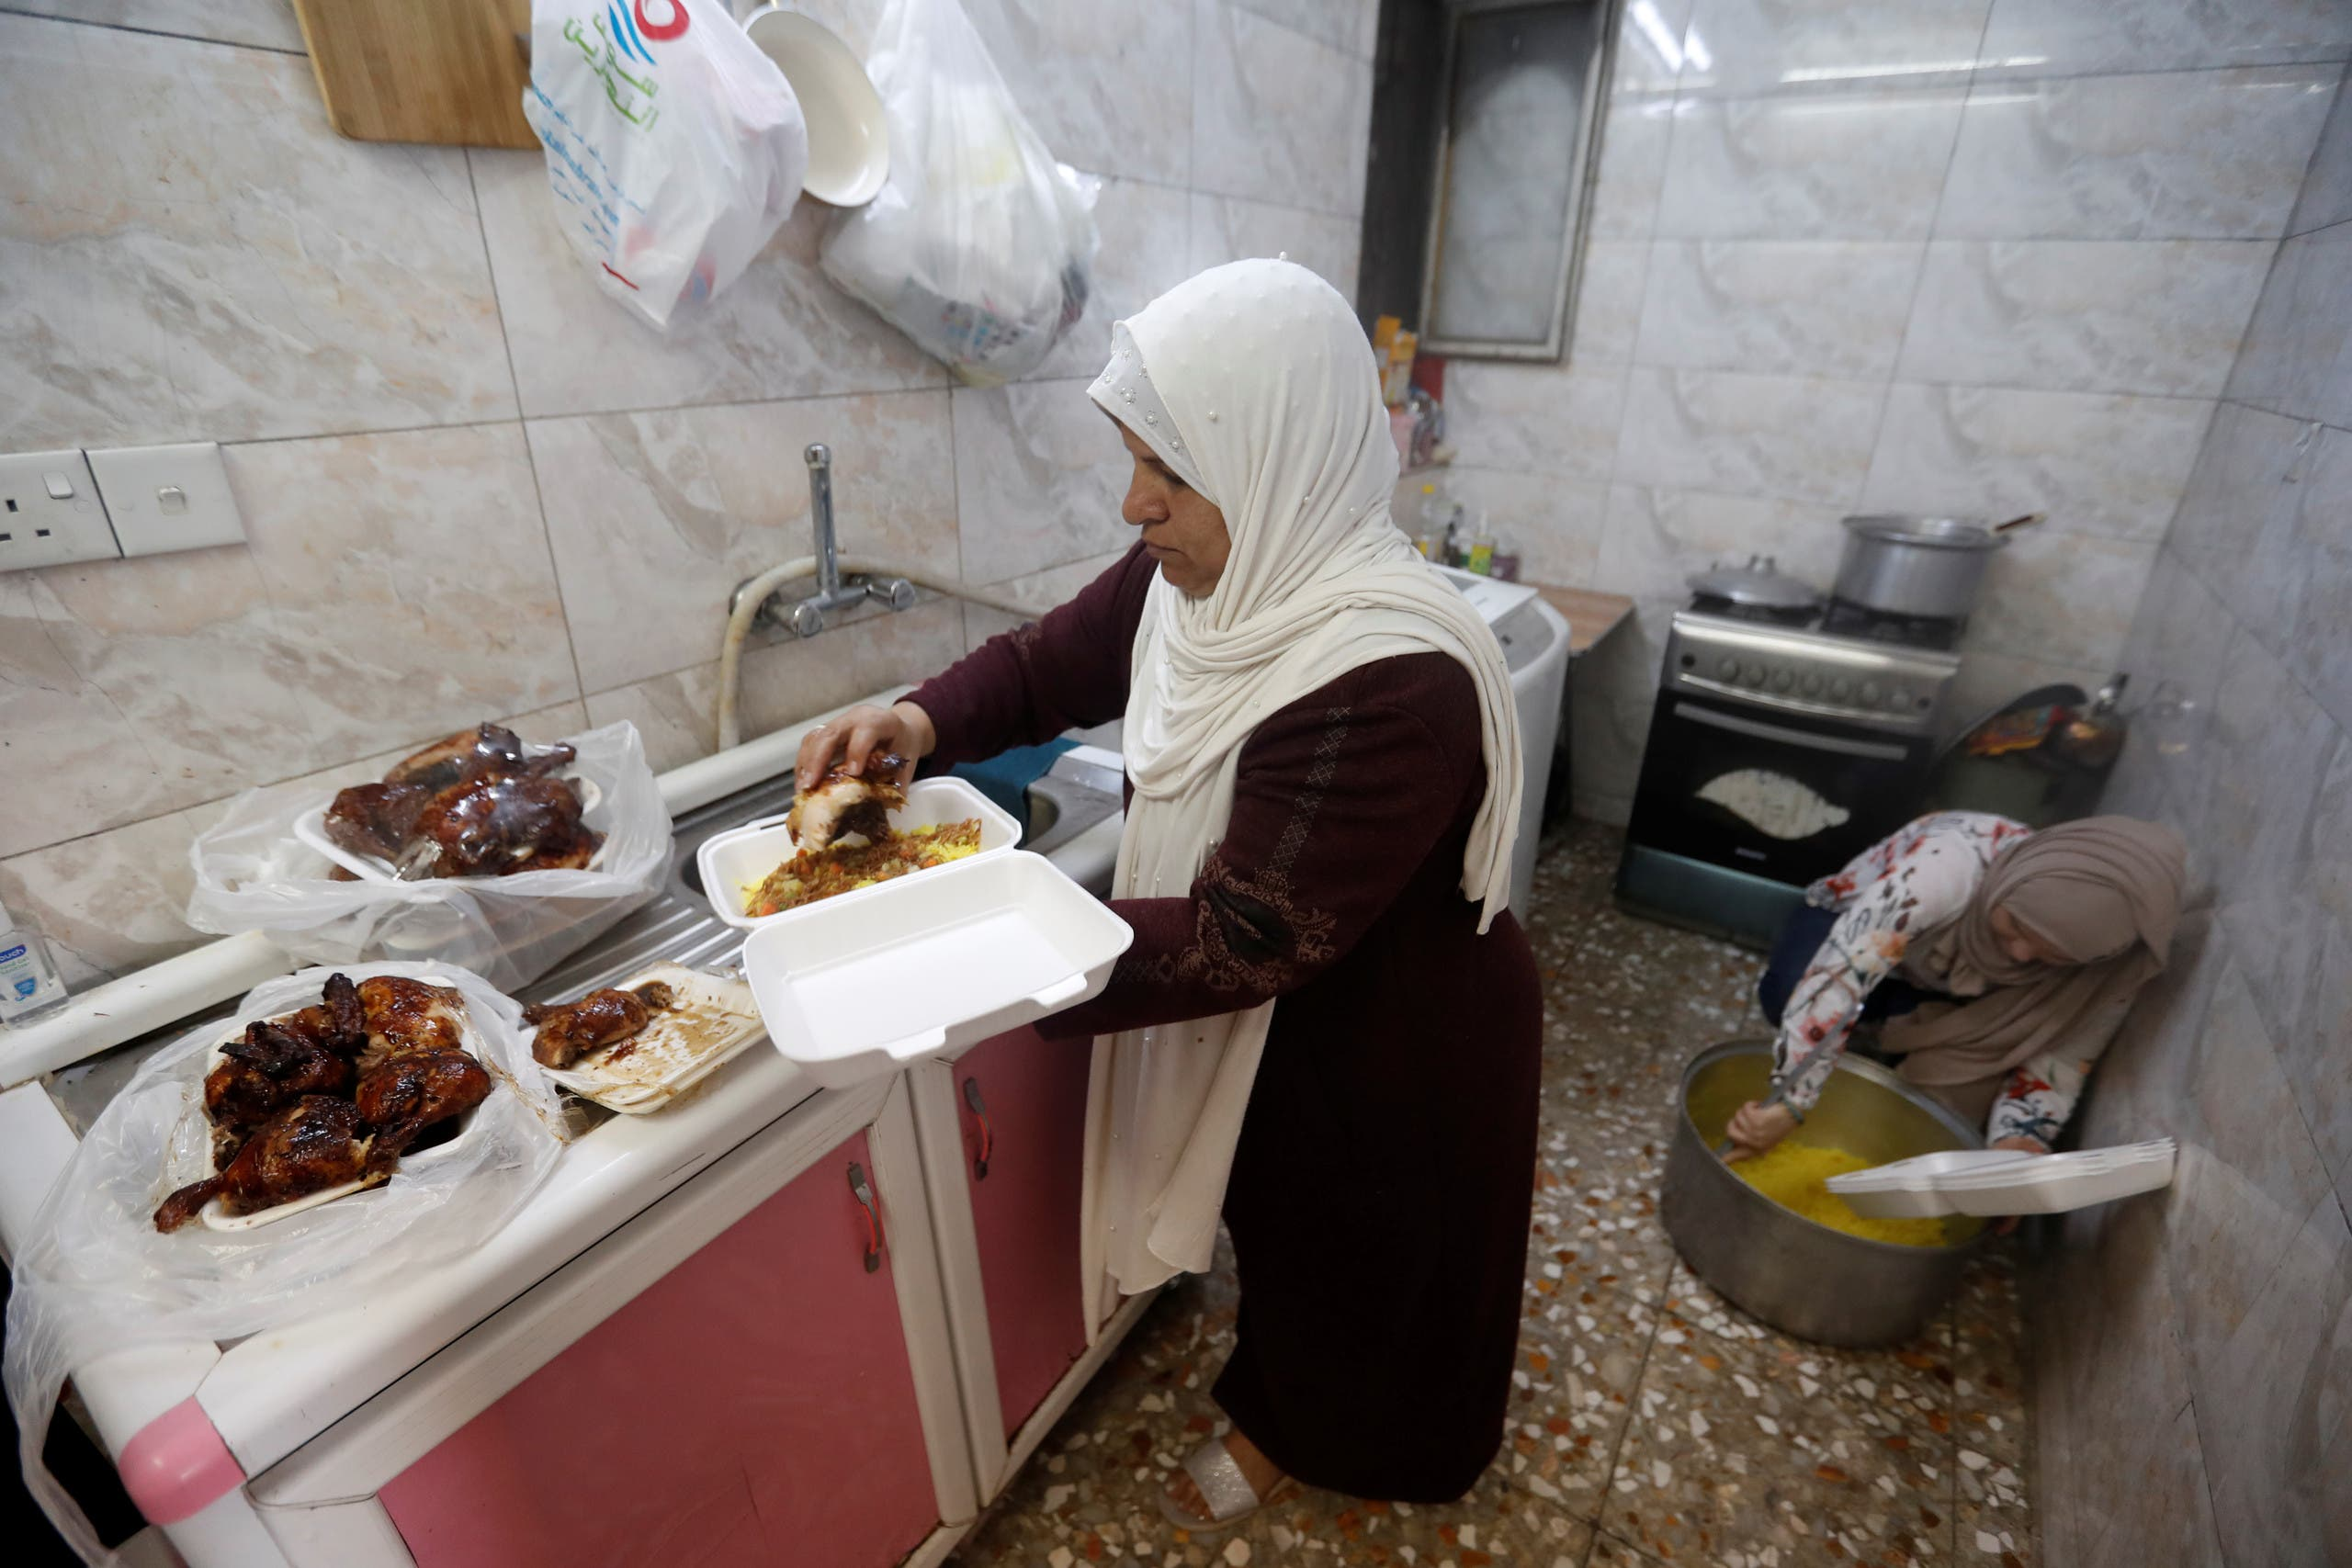 An Iraqi woman Ikhlas Majeed prepares Iftar meals for worshipers and poor families during the holy fasting month of Ramadan in Baghdad's Adhamiya district. (Reuters)